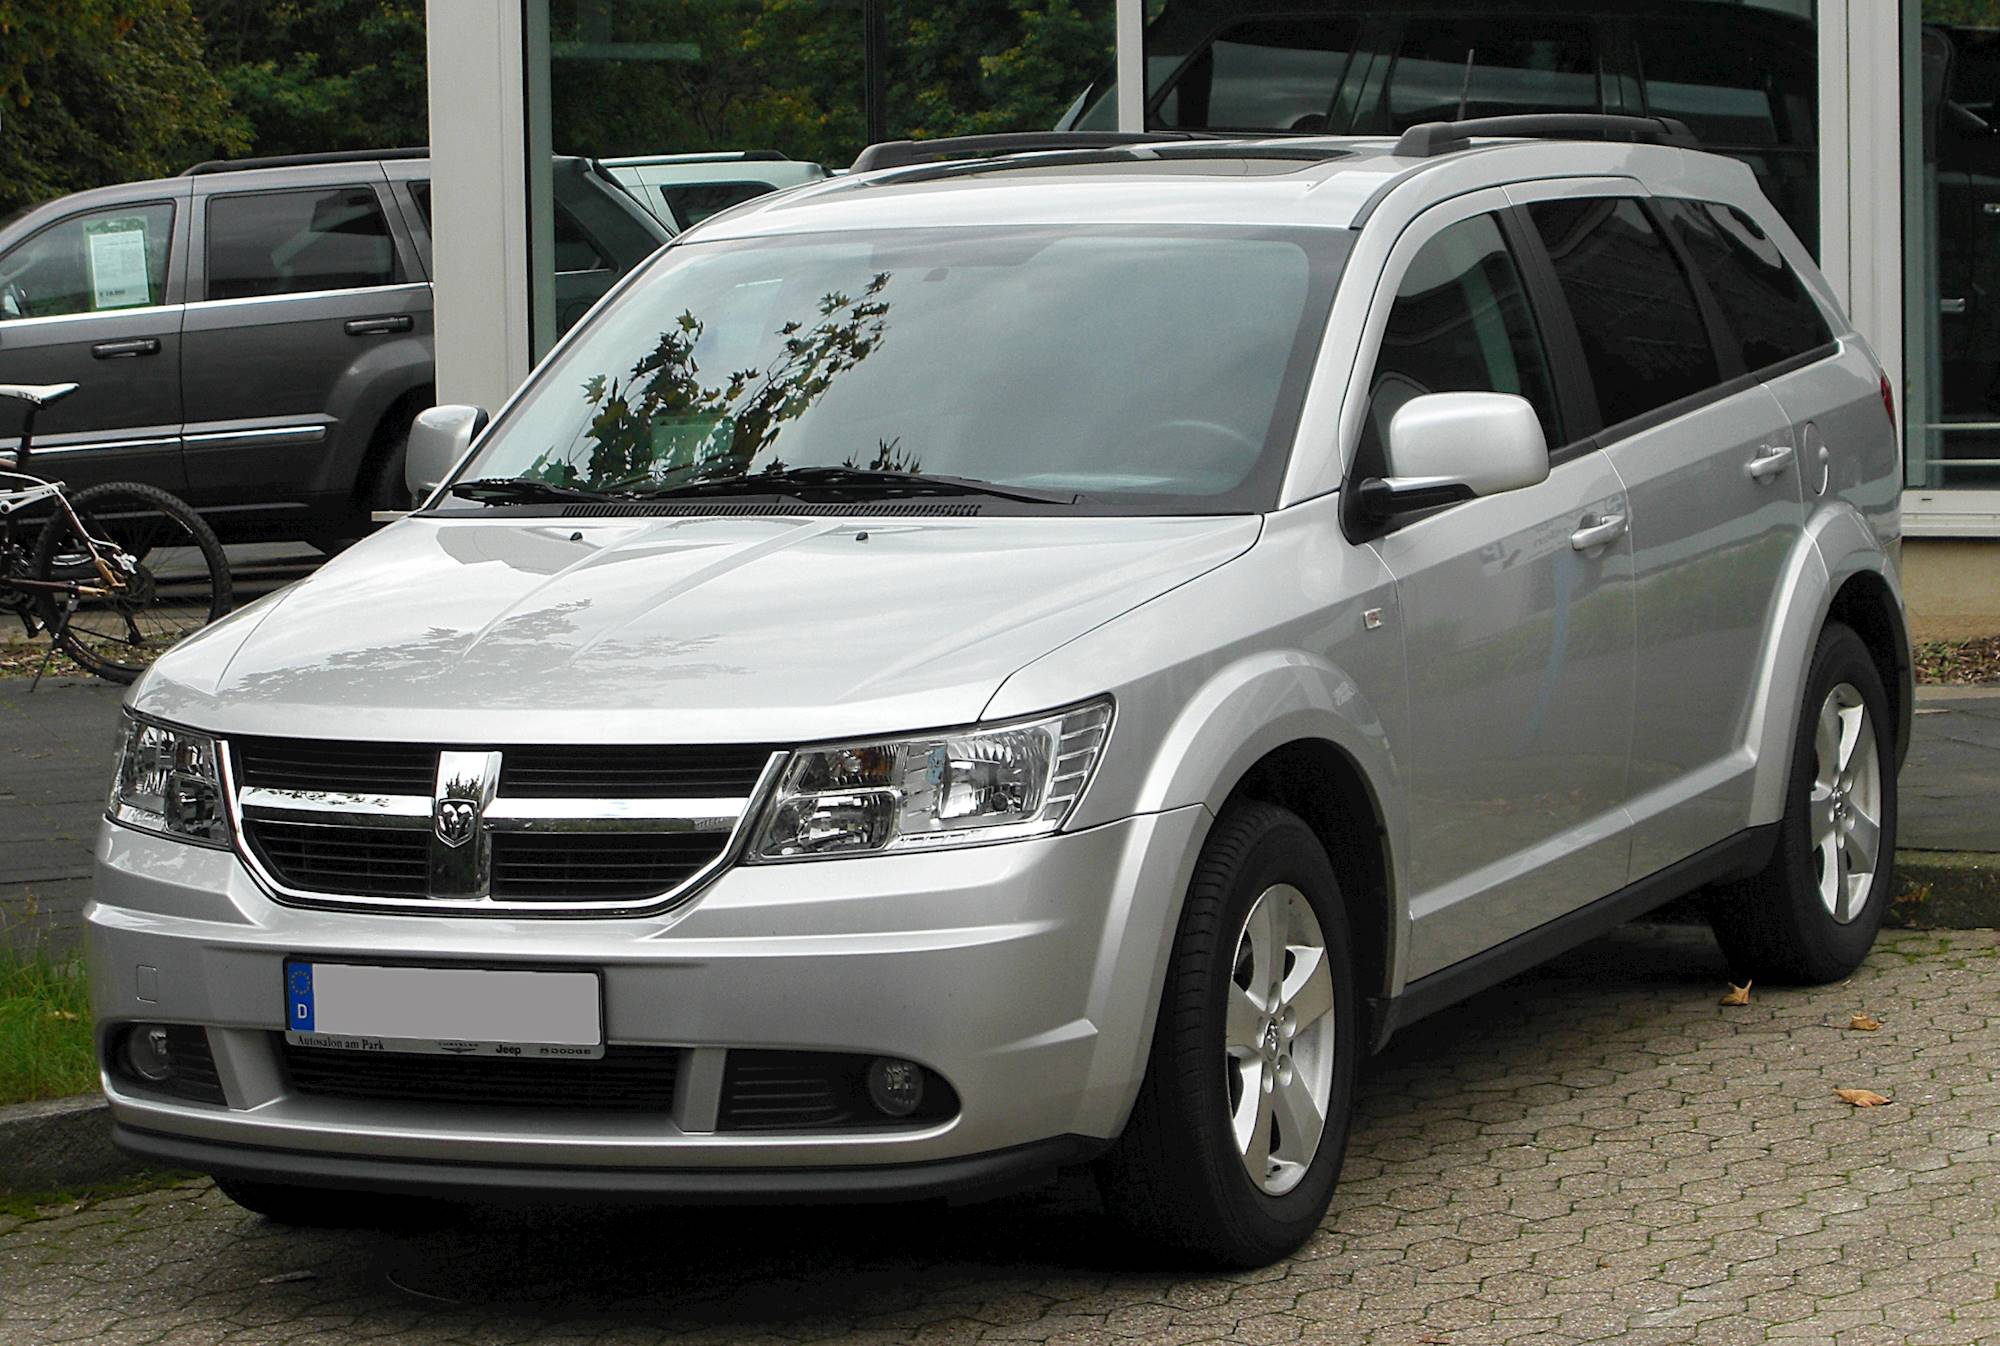 Cc Fcd Cbaefbd E Fc Eff Cf together with  moreover Dodge Journey Sxt Suv Rear Seat together with Hqdefault in addition Dodge Caliber Sxt Pic X. on 2010 dodge journey sxt